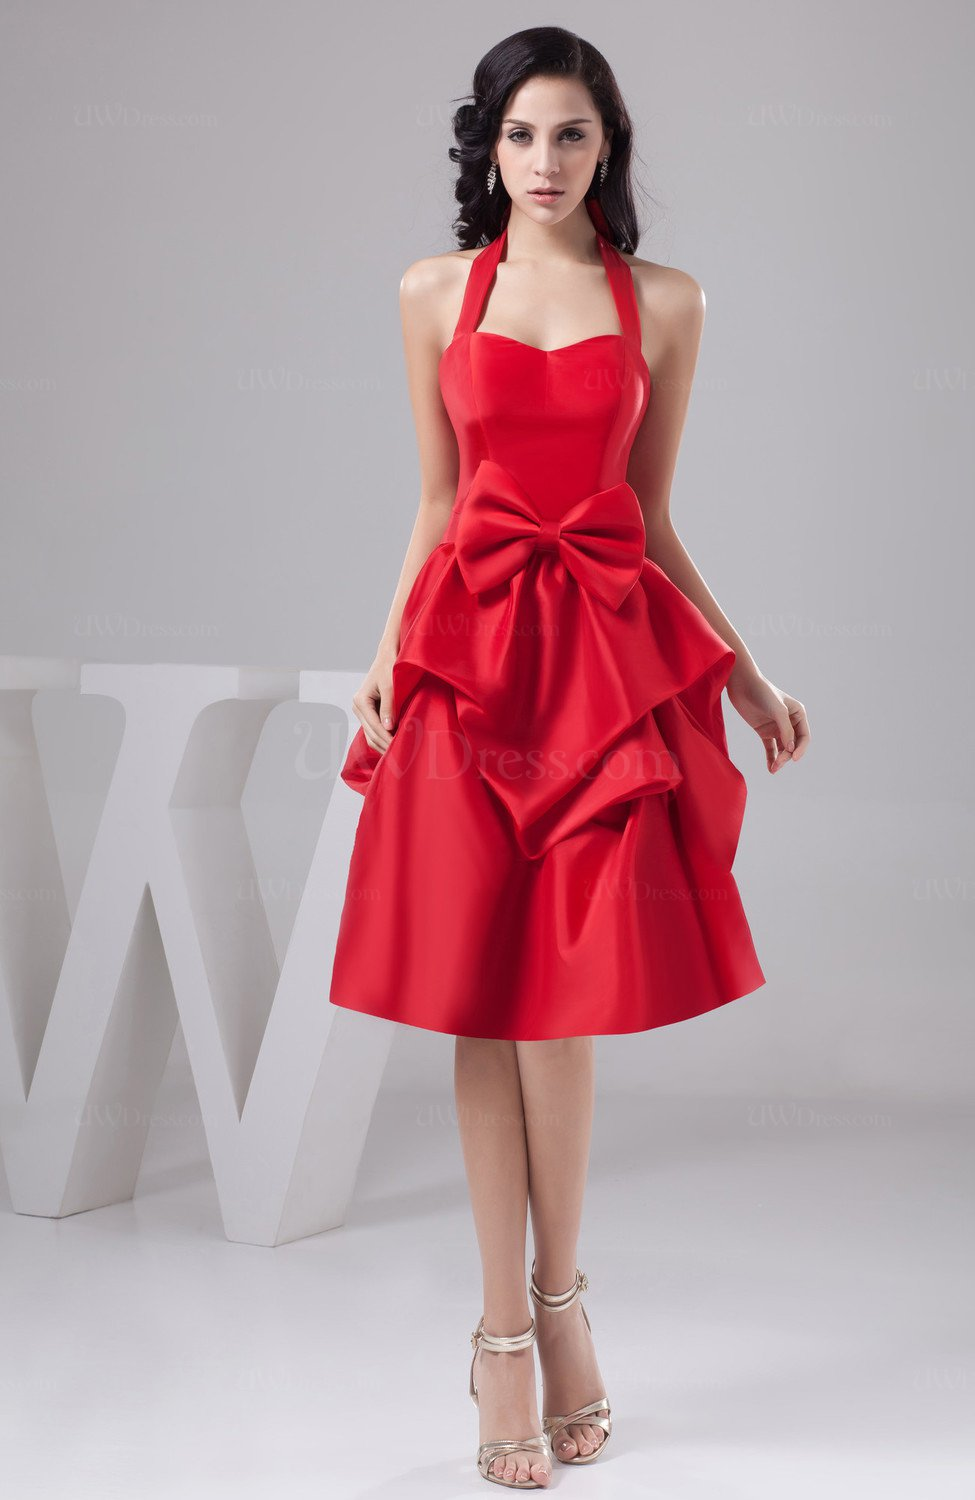 Red Inexpensive Prom Dress Short Hourglass Petite Formal Spring Semi ...